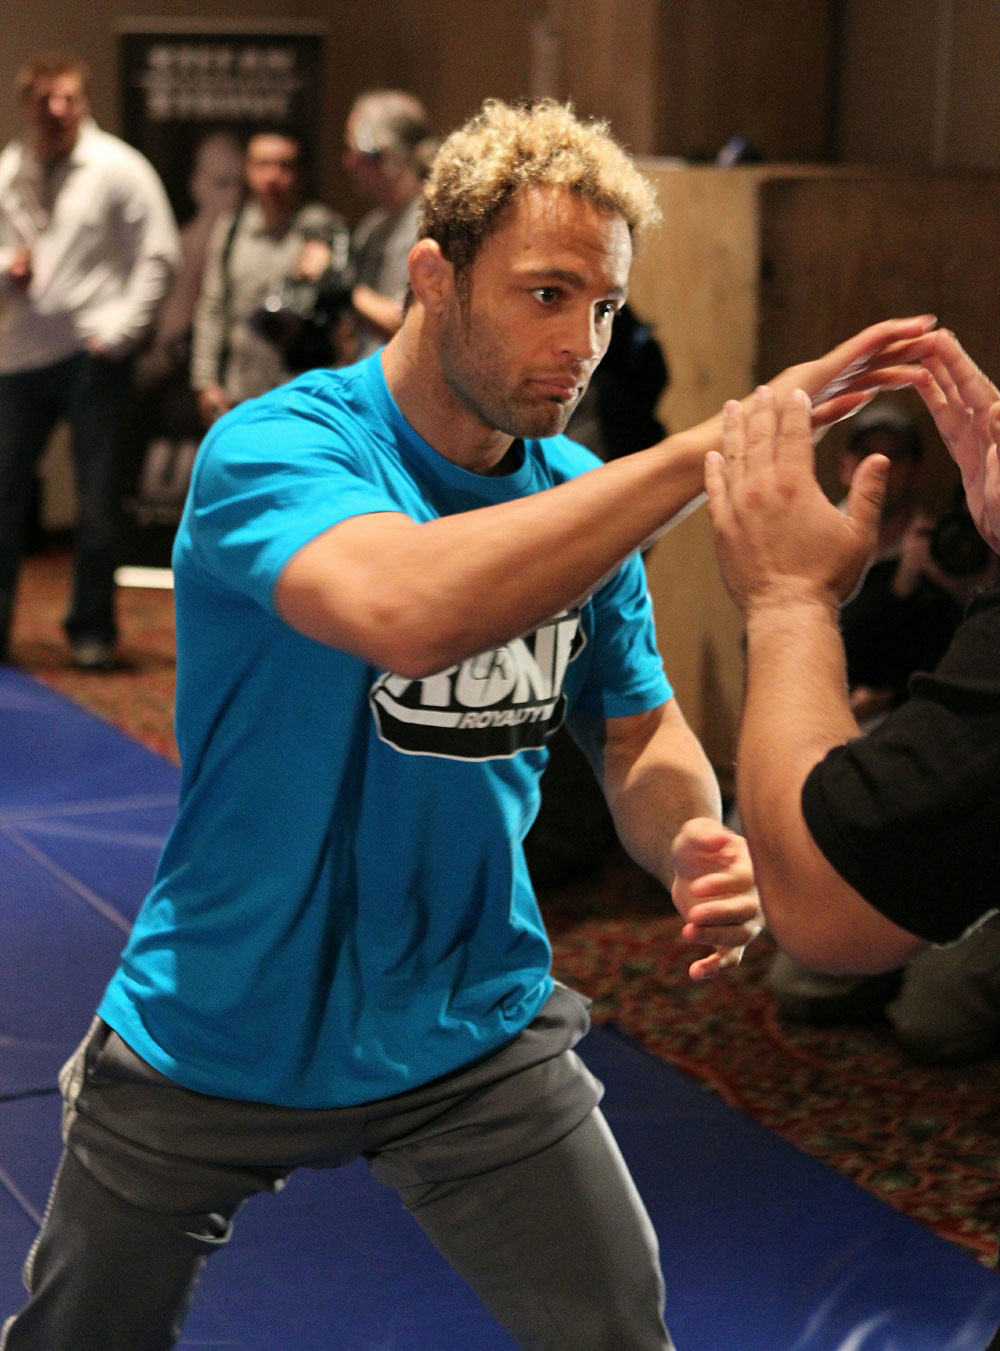 MONTREAL, QC - DECEMBER 08:  UFC 124 open workouts at the Marriott Chateau Champlain in on December 8, 2010 in Montreal, Quebec, Canada.  (Photo by Josh Hedges/Zuffa LLC/Zuffa LLC via Getty Images)